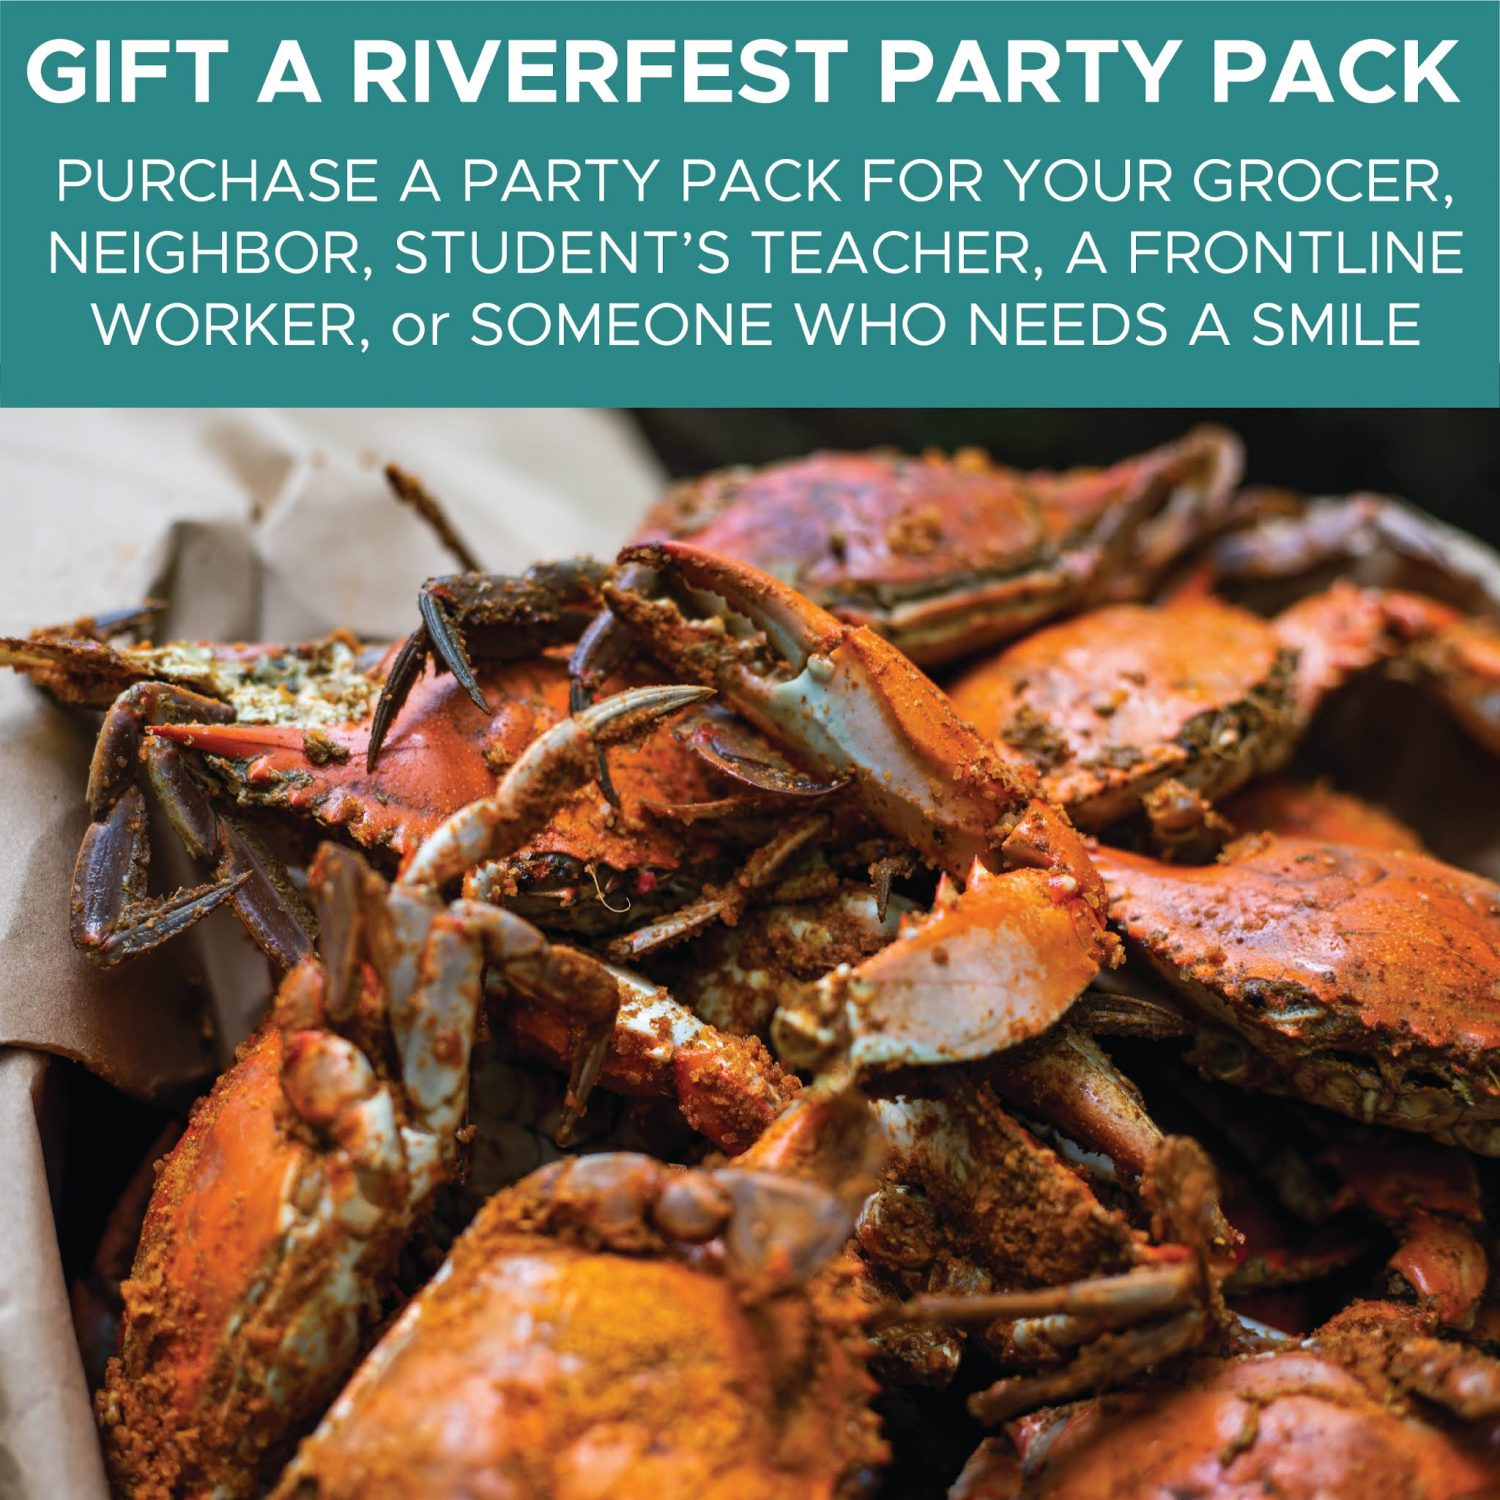 Bushel of crabs to gift a party pack